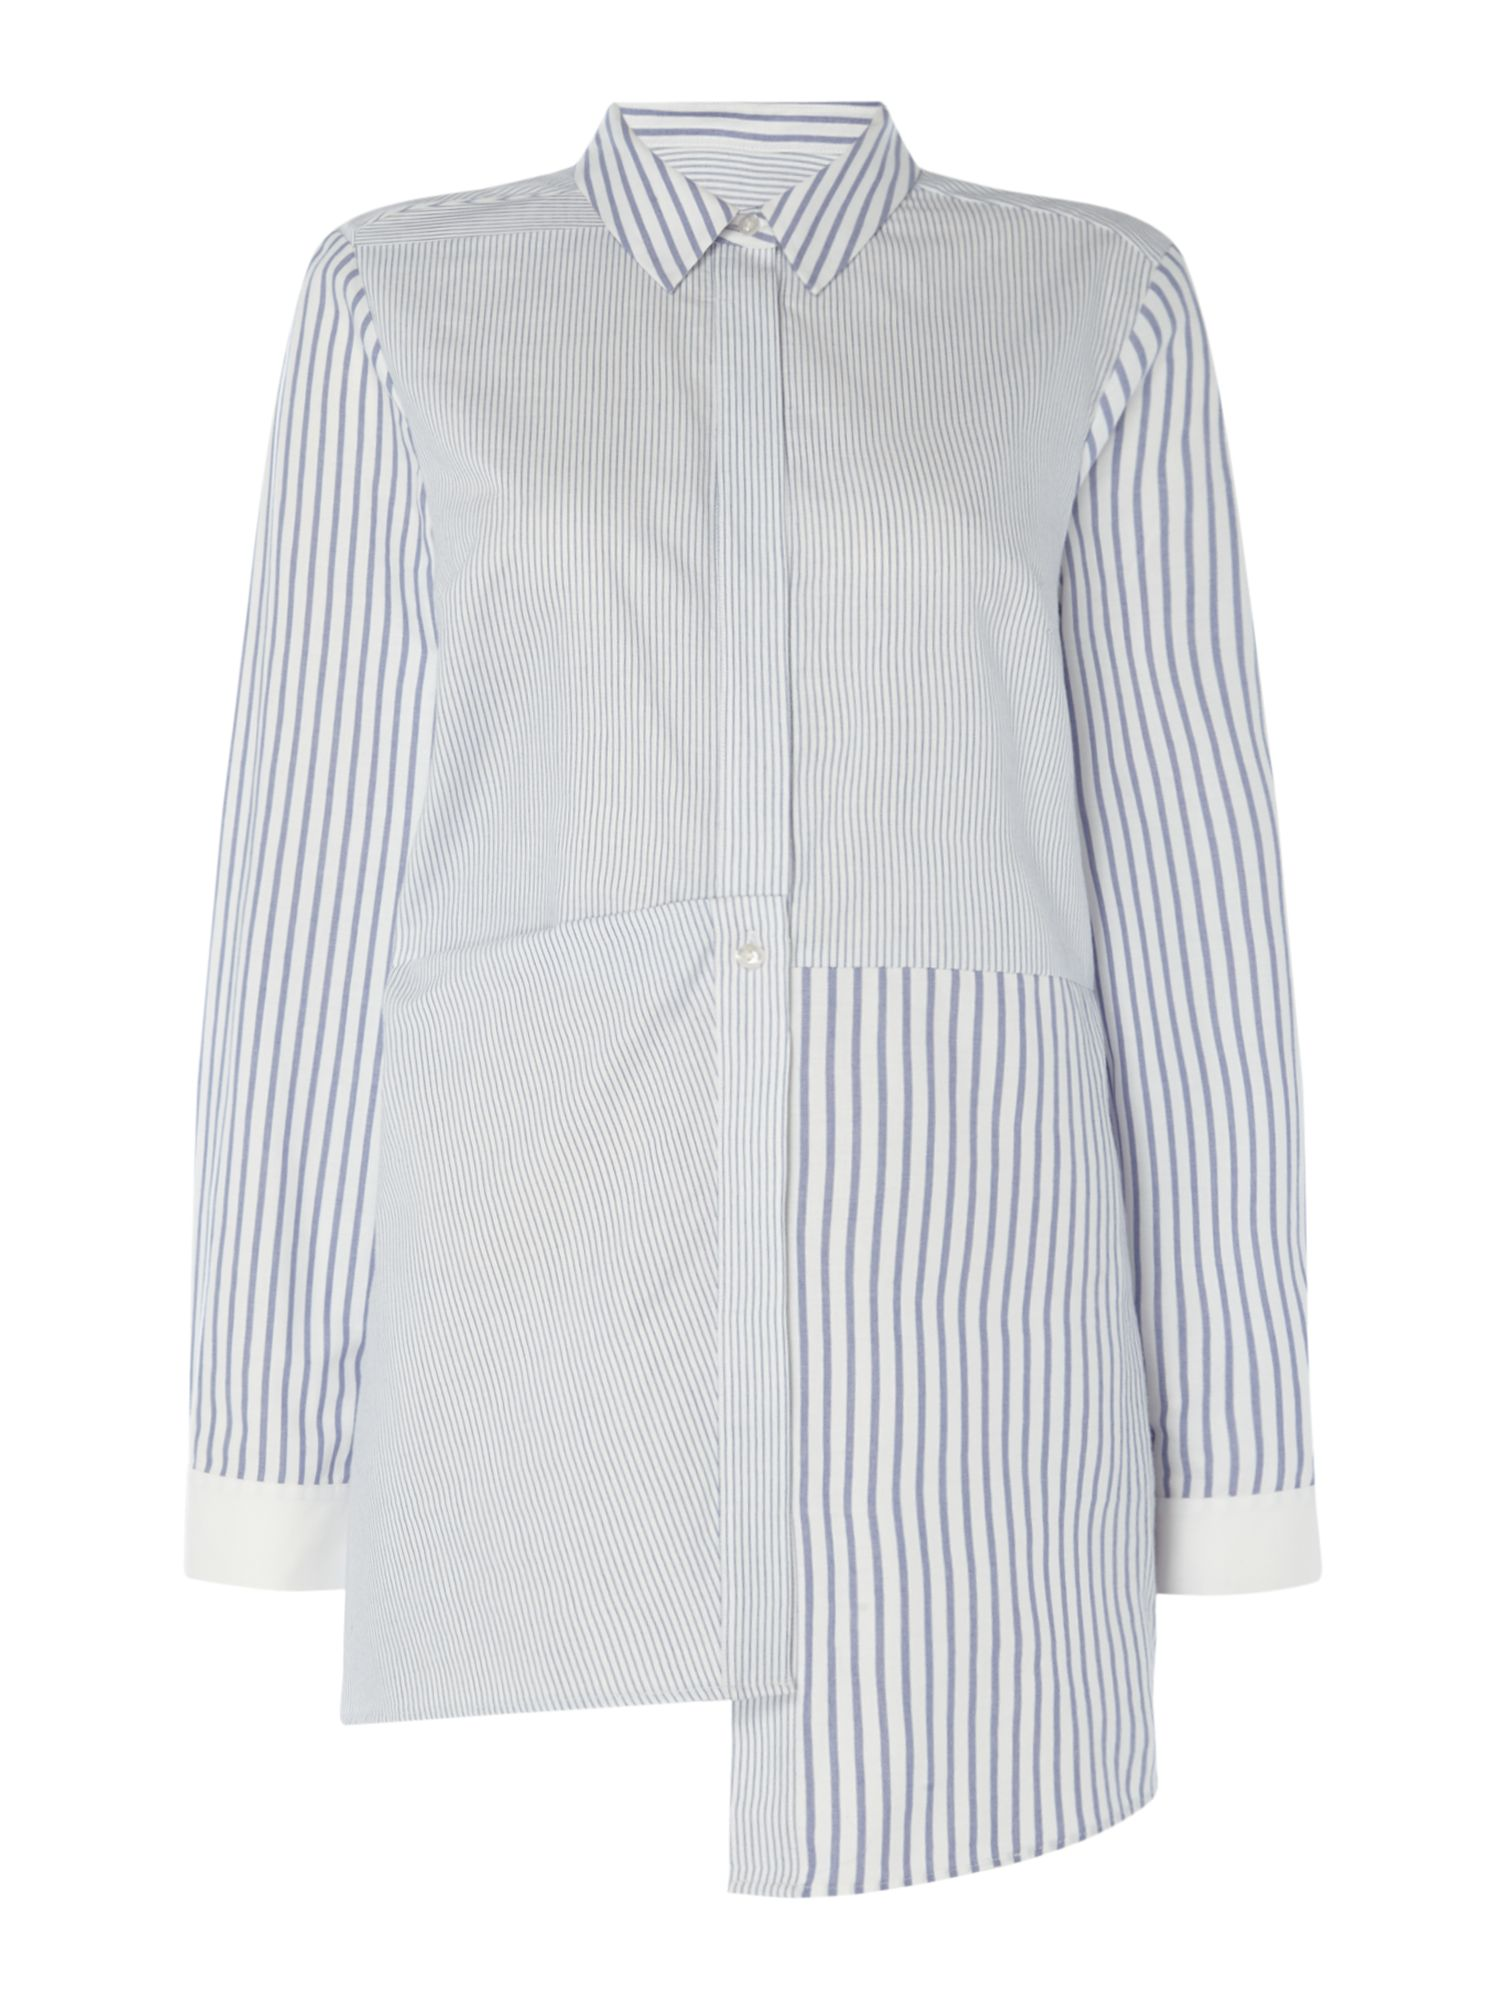 Label Lab Stripe Hitch & Slash Shirt, Blue